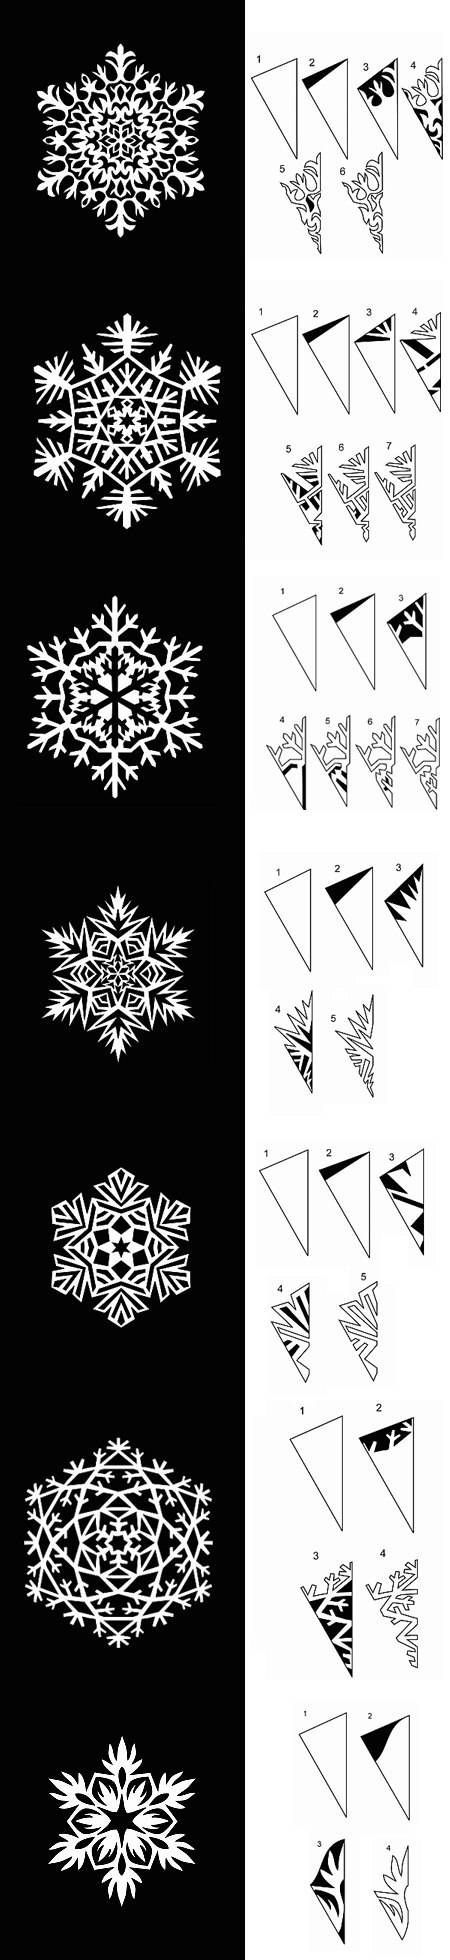 DIY Paper Snowflakes Templates DIY Projects / UsefulDIY.com